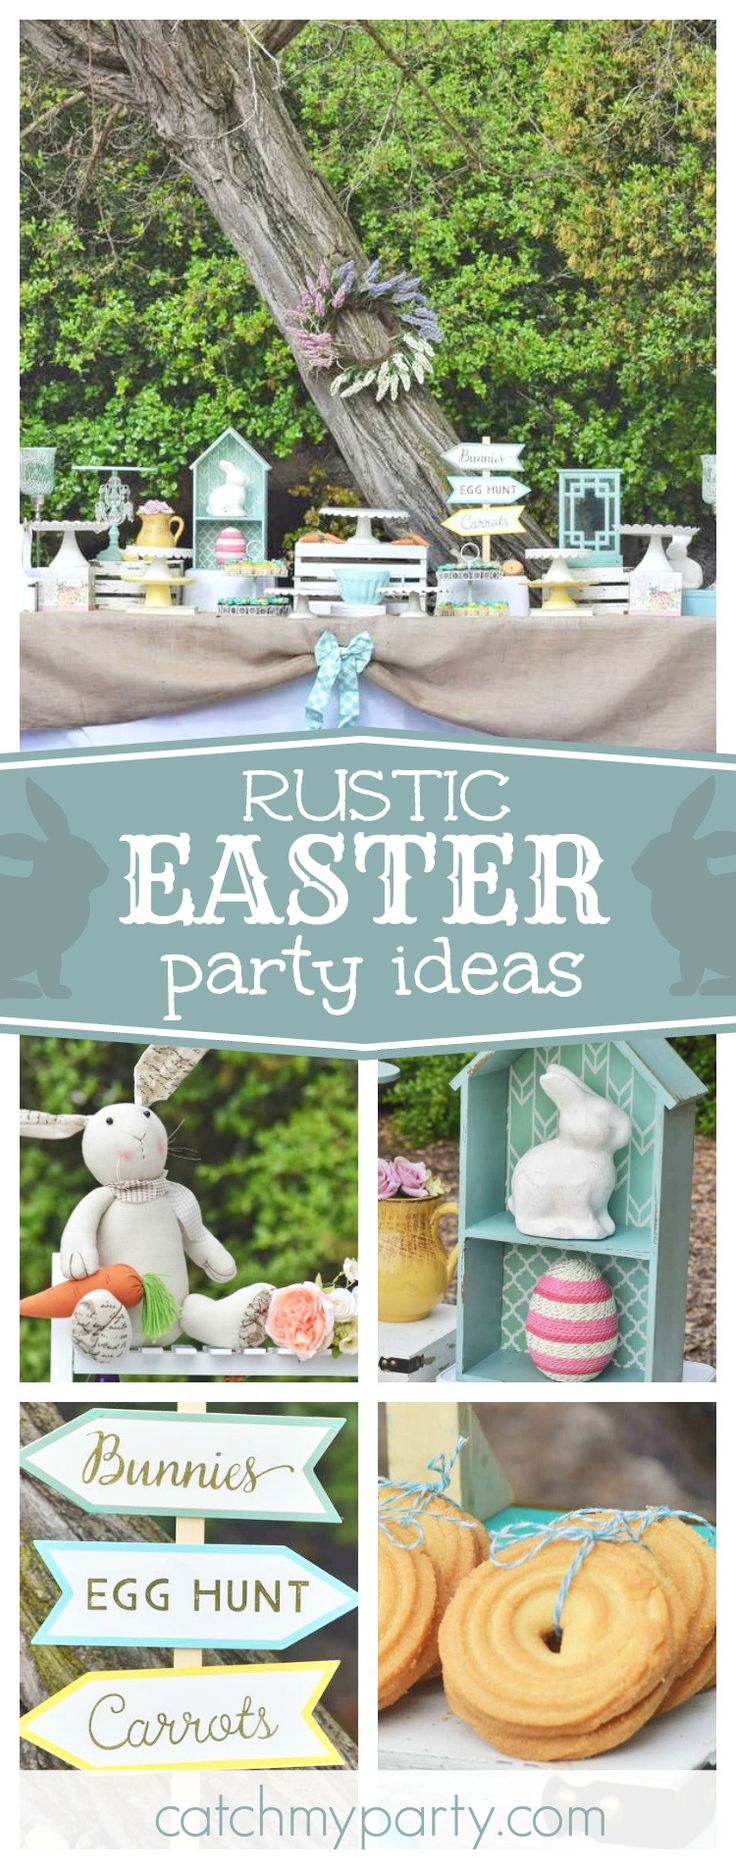 Don't miss this beautiful rustic Easter Bunny Party! The decorations are gorgeous!! See more party ideas and share yours at CatchMyParty.com